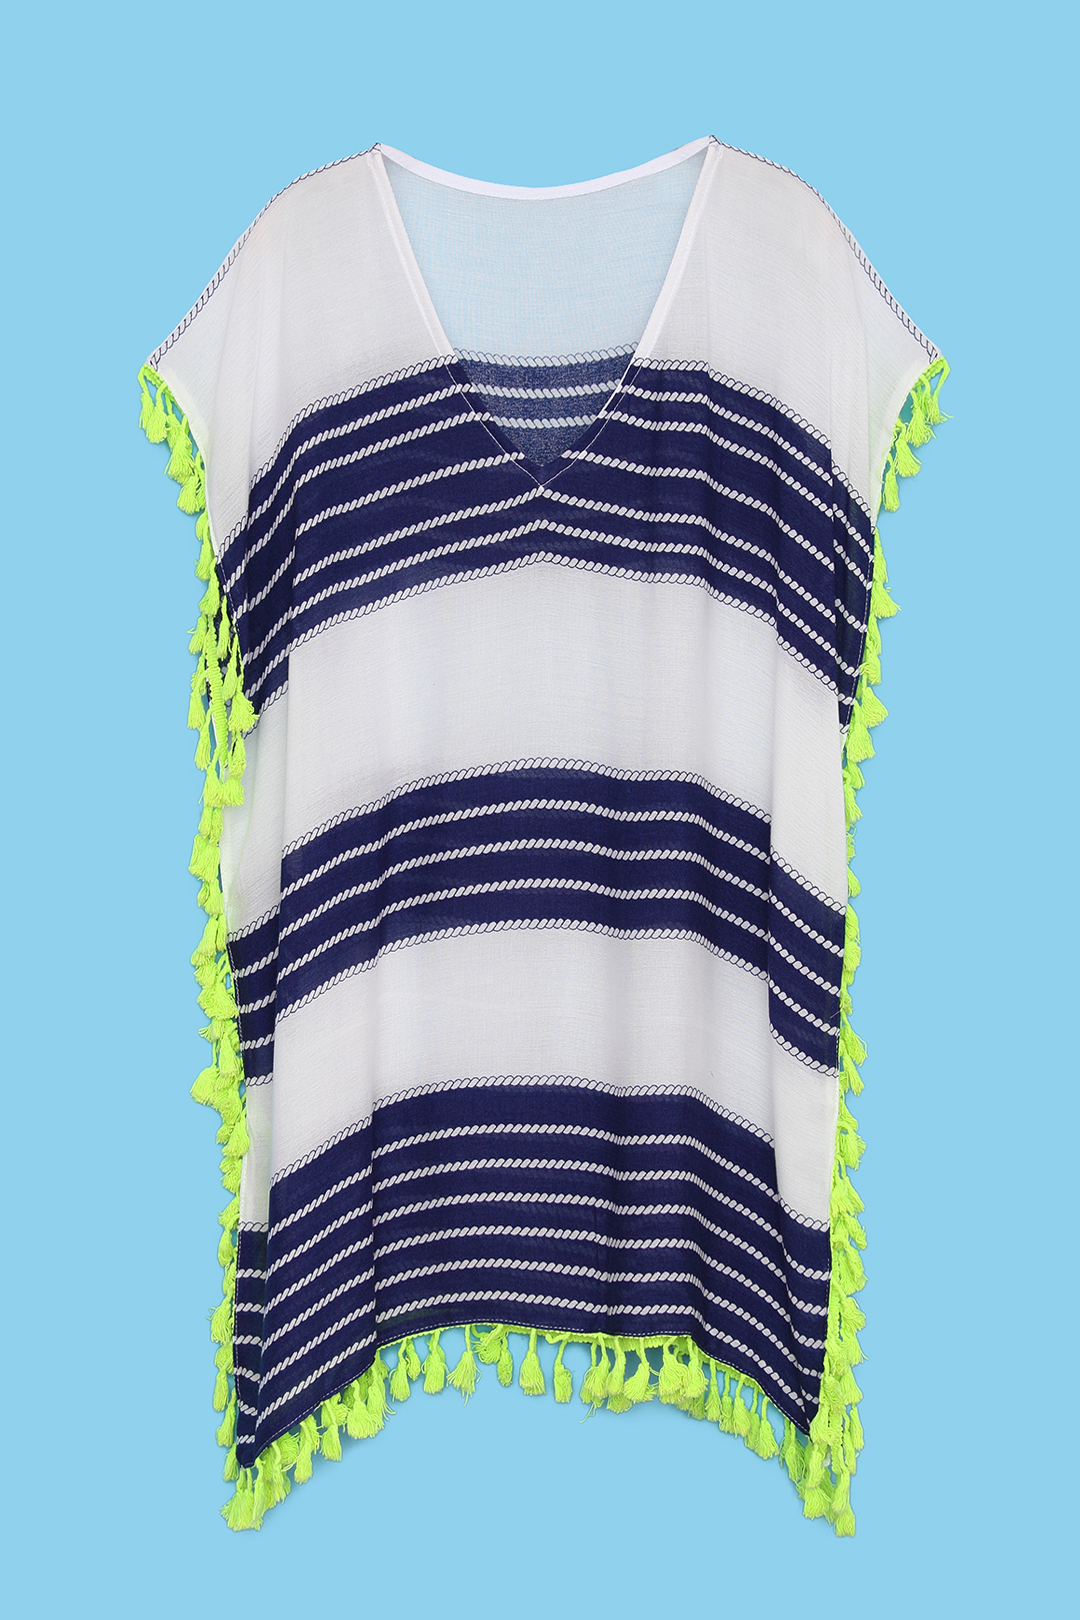 Stripe V-neck Beachwear with Tassel Details